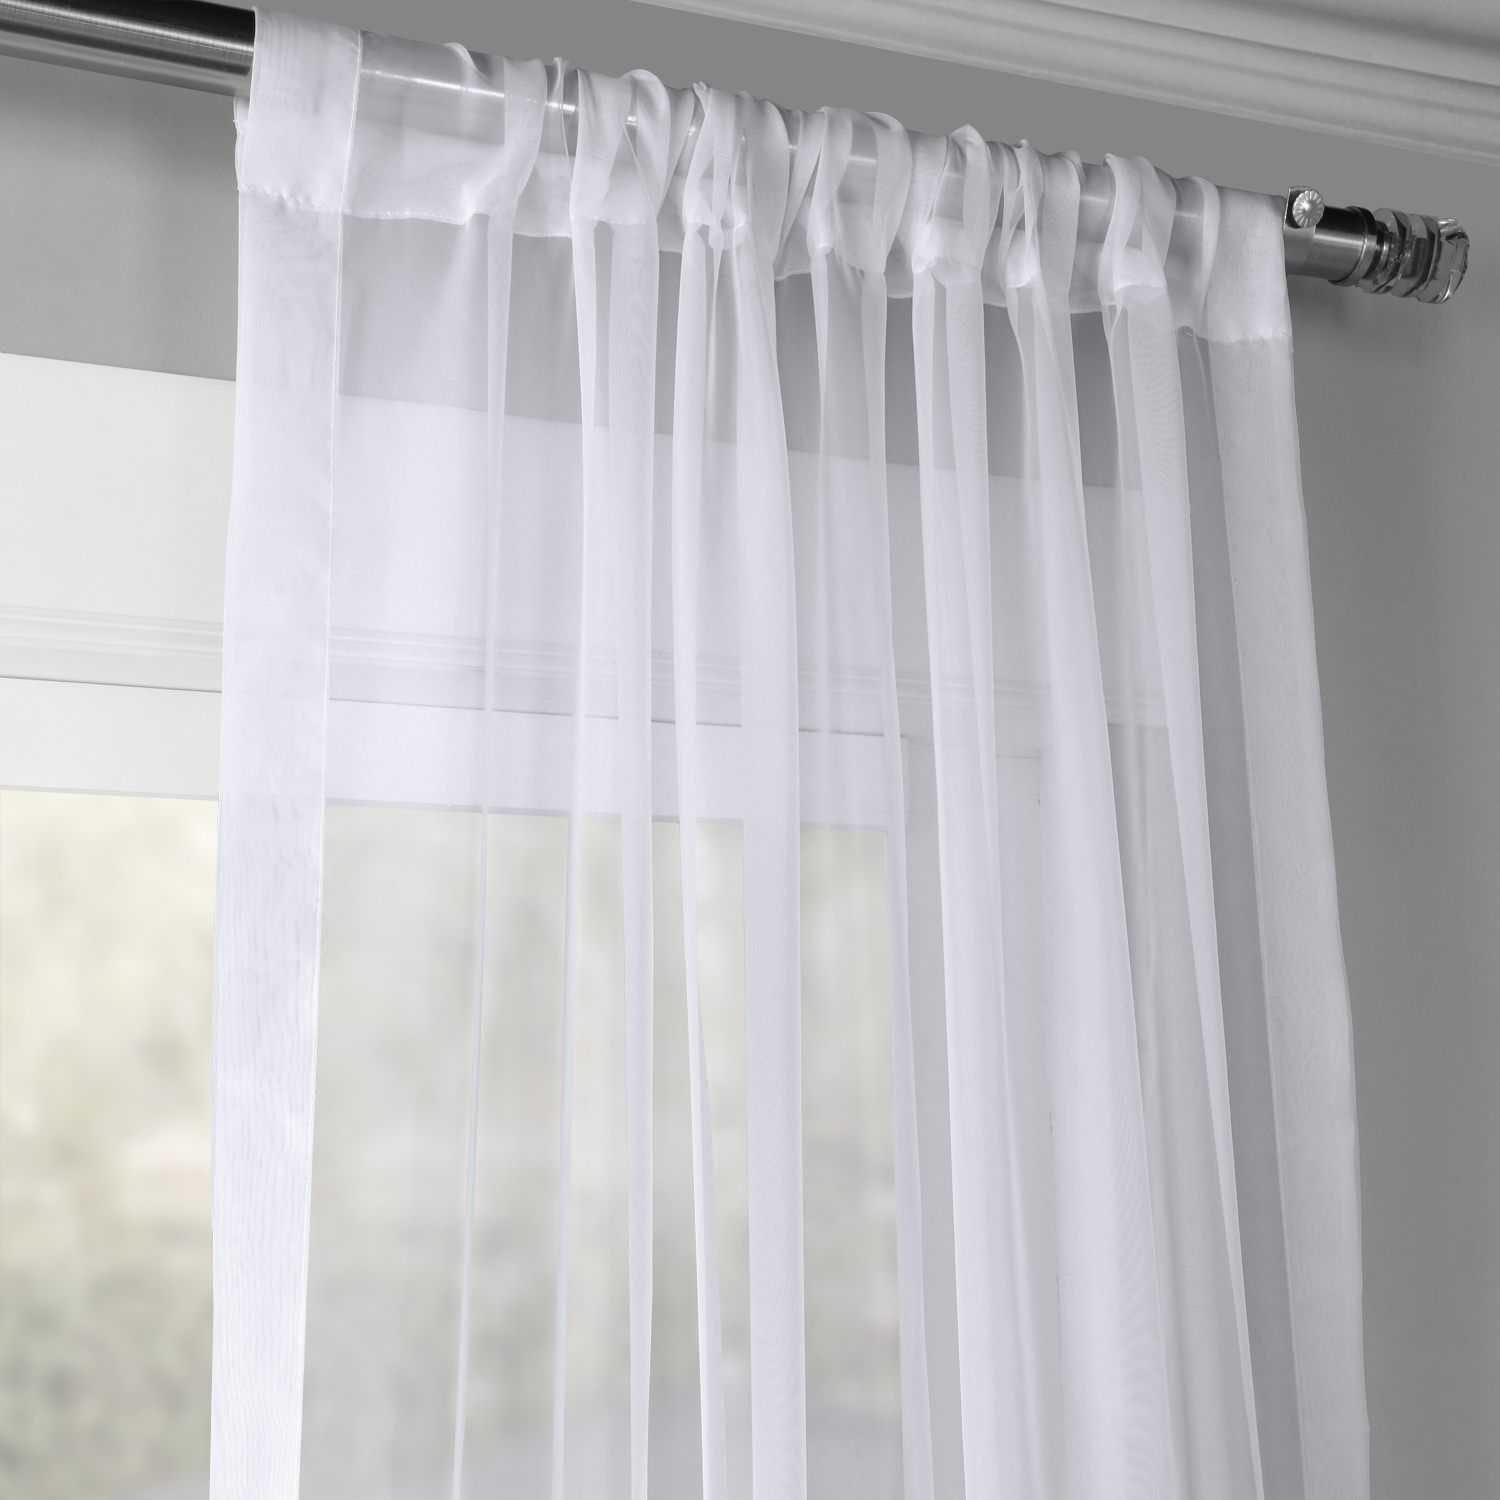 105 Inch Curtains Pinch Pleat Curtains Drapes Window Treatments Home Decor Kohl S